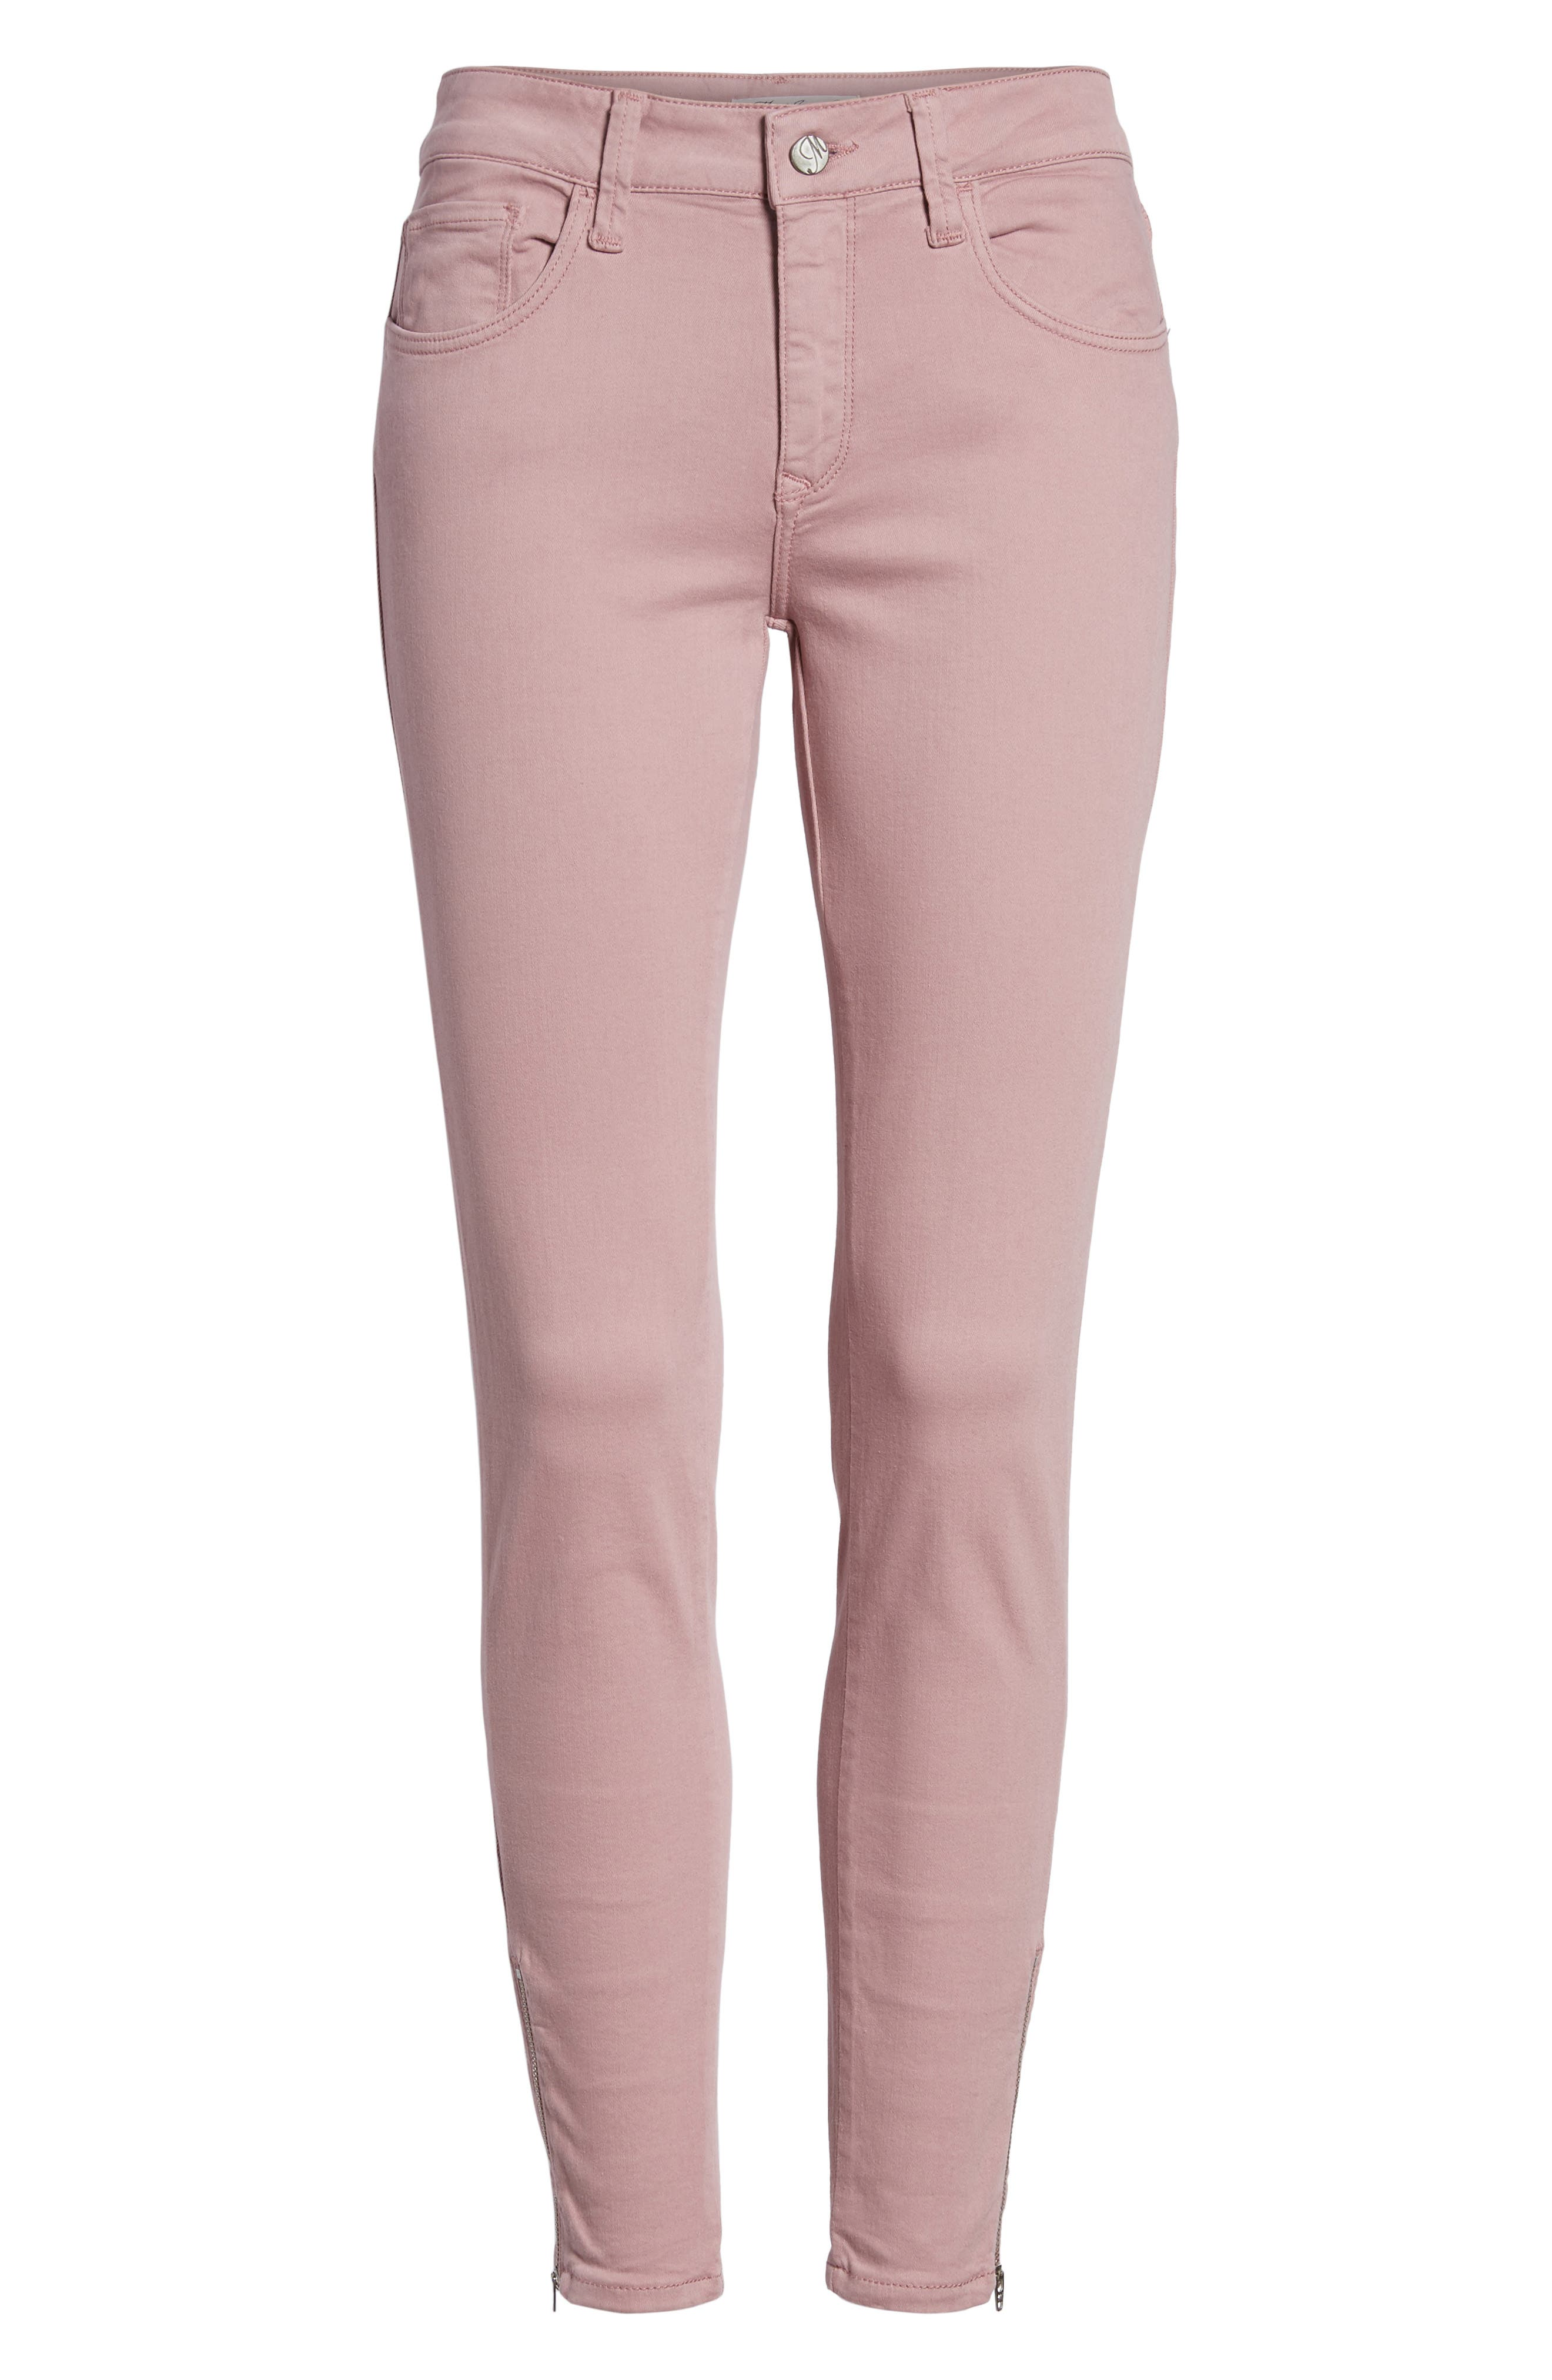 Adriana Zip Ankle Super Skinny Jeans,                             Alternate thumbnail 7, color,                             650